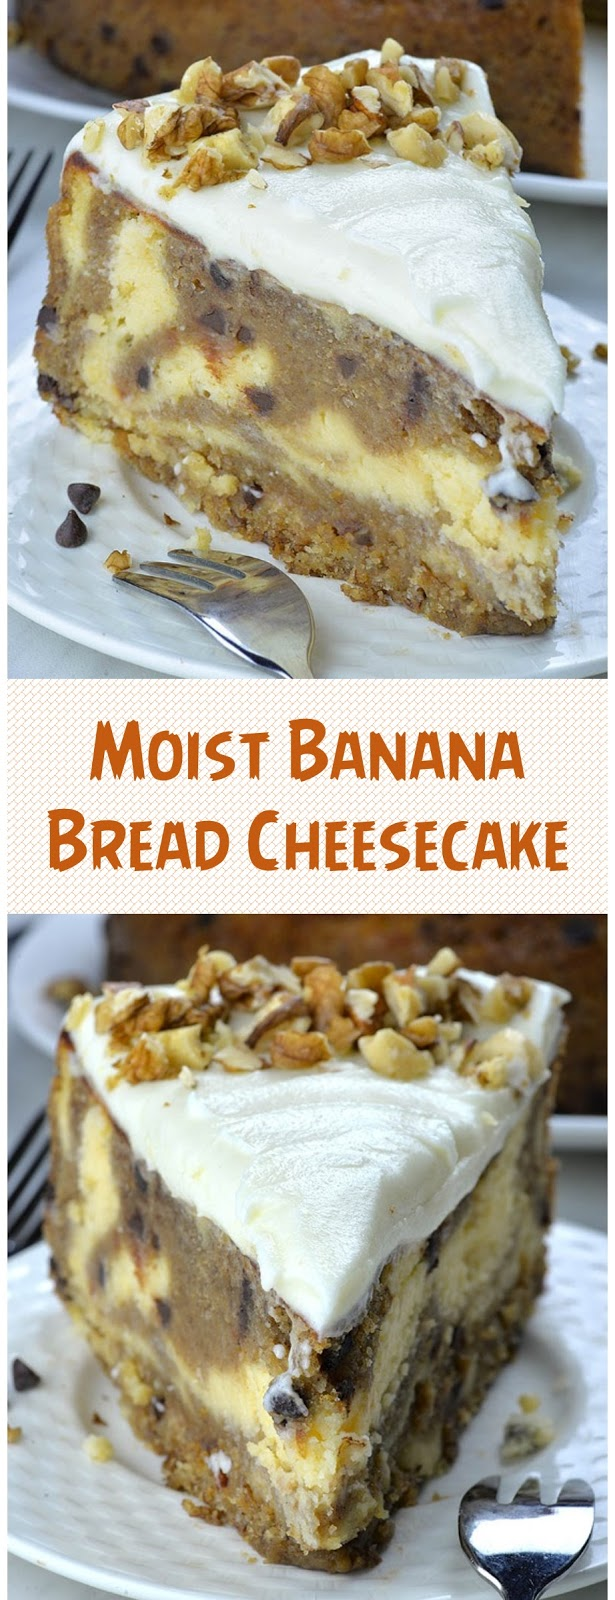 Moist Banana Bread Cheesecake